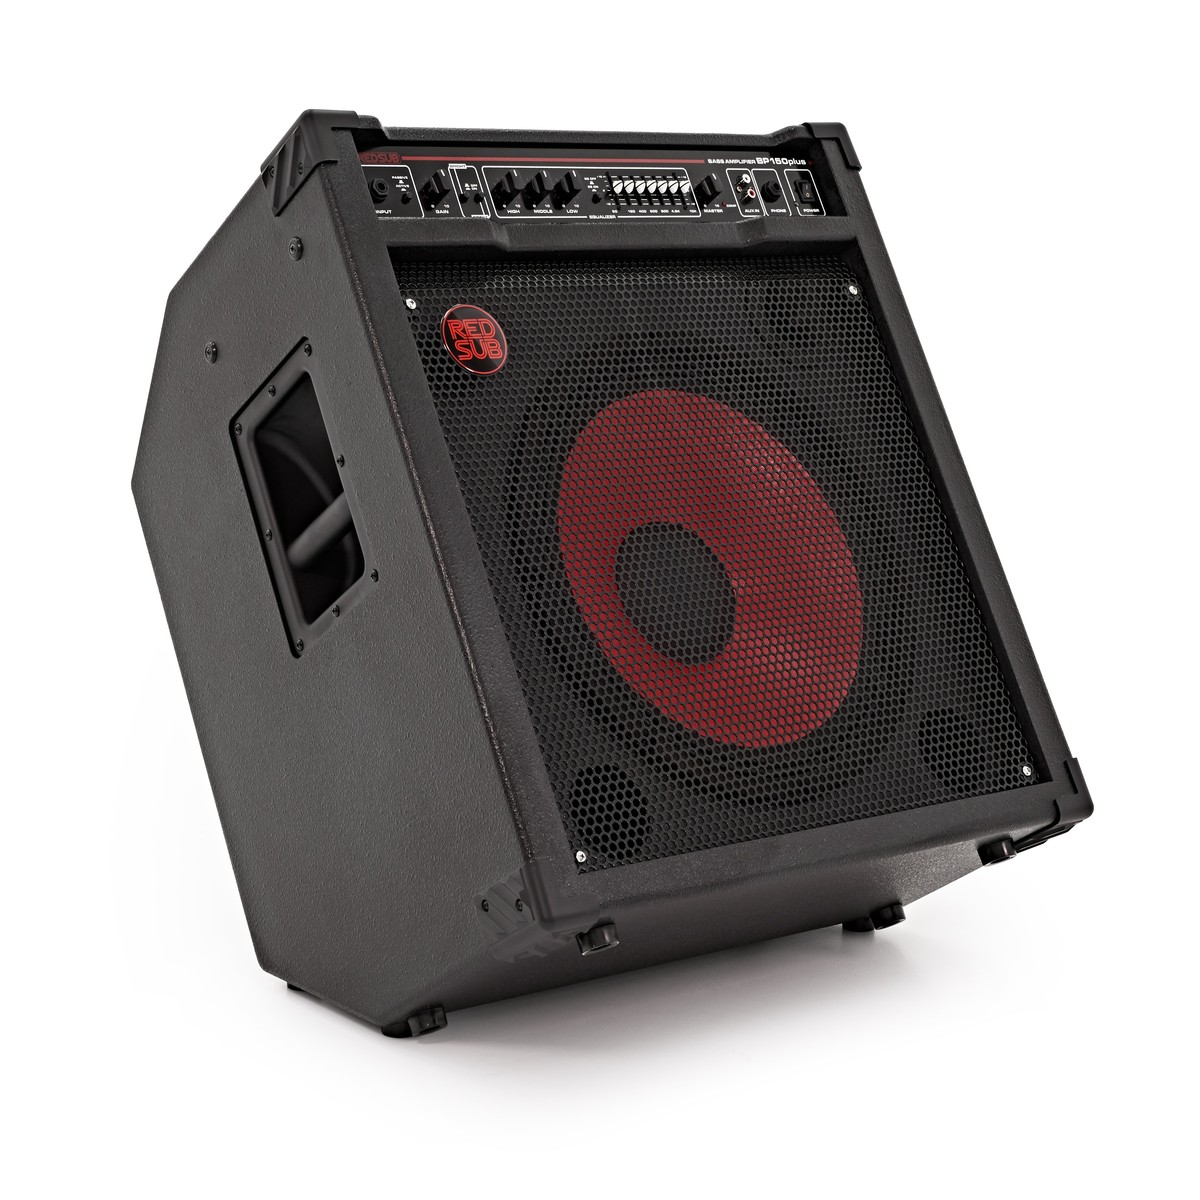 redsub bp150plus 150w bass guitar amplifier at. Black Bedroom Furniture Sets. Home Design Ideas